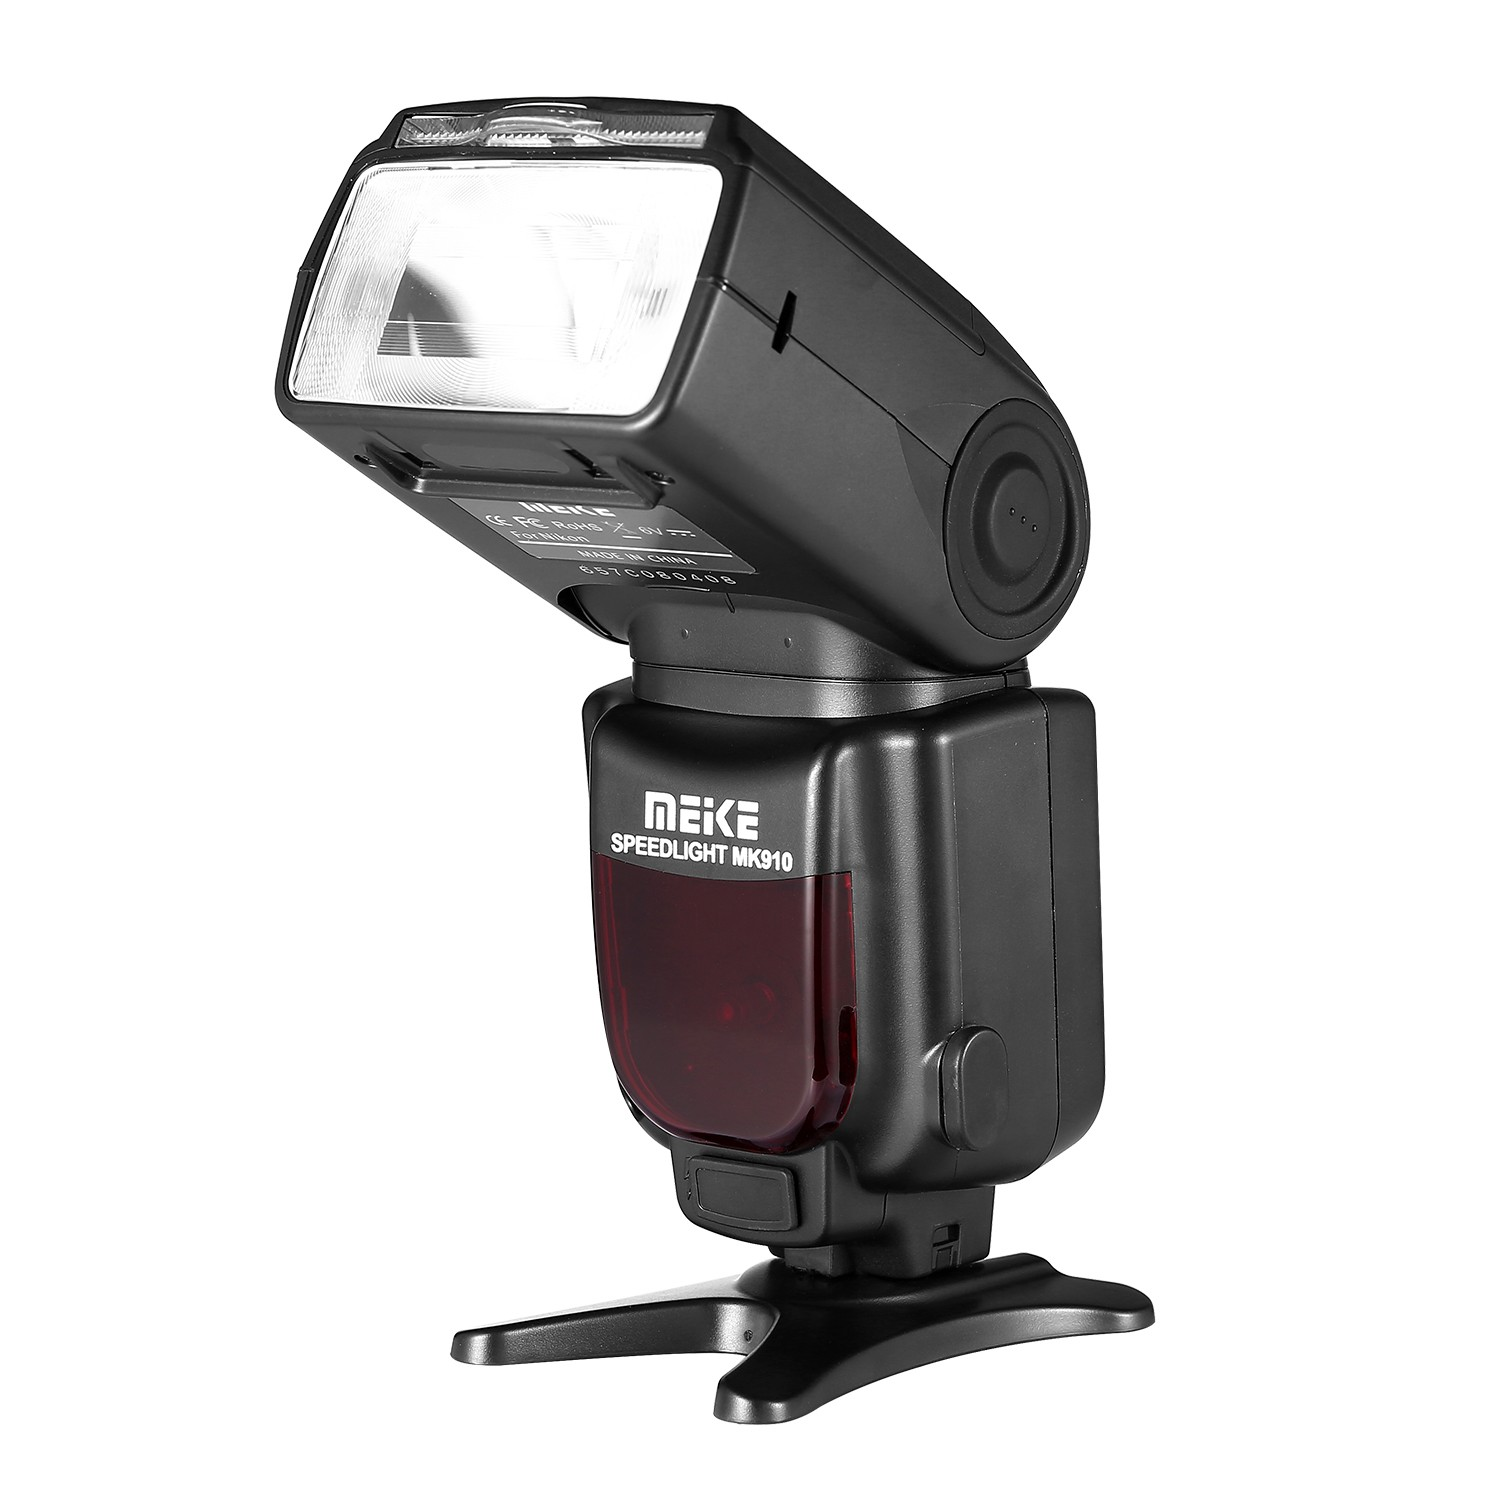 Meike MK-910 MK910 i-TTL 1/8000s HSS Sync Master & Slave flash speedlite for Nikon SB-910 SB-900 D7100 D800 D5500 D750 DSLR came spash sl 685c gn60 wireless master slave flash light ttl speedlite for nikon lcd screen cameras flash adjustable fill light